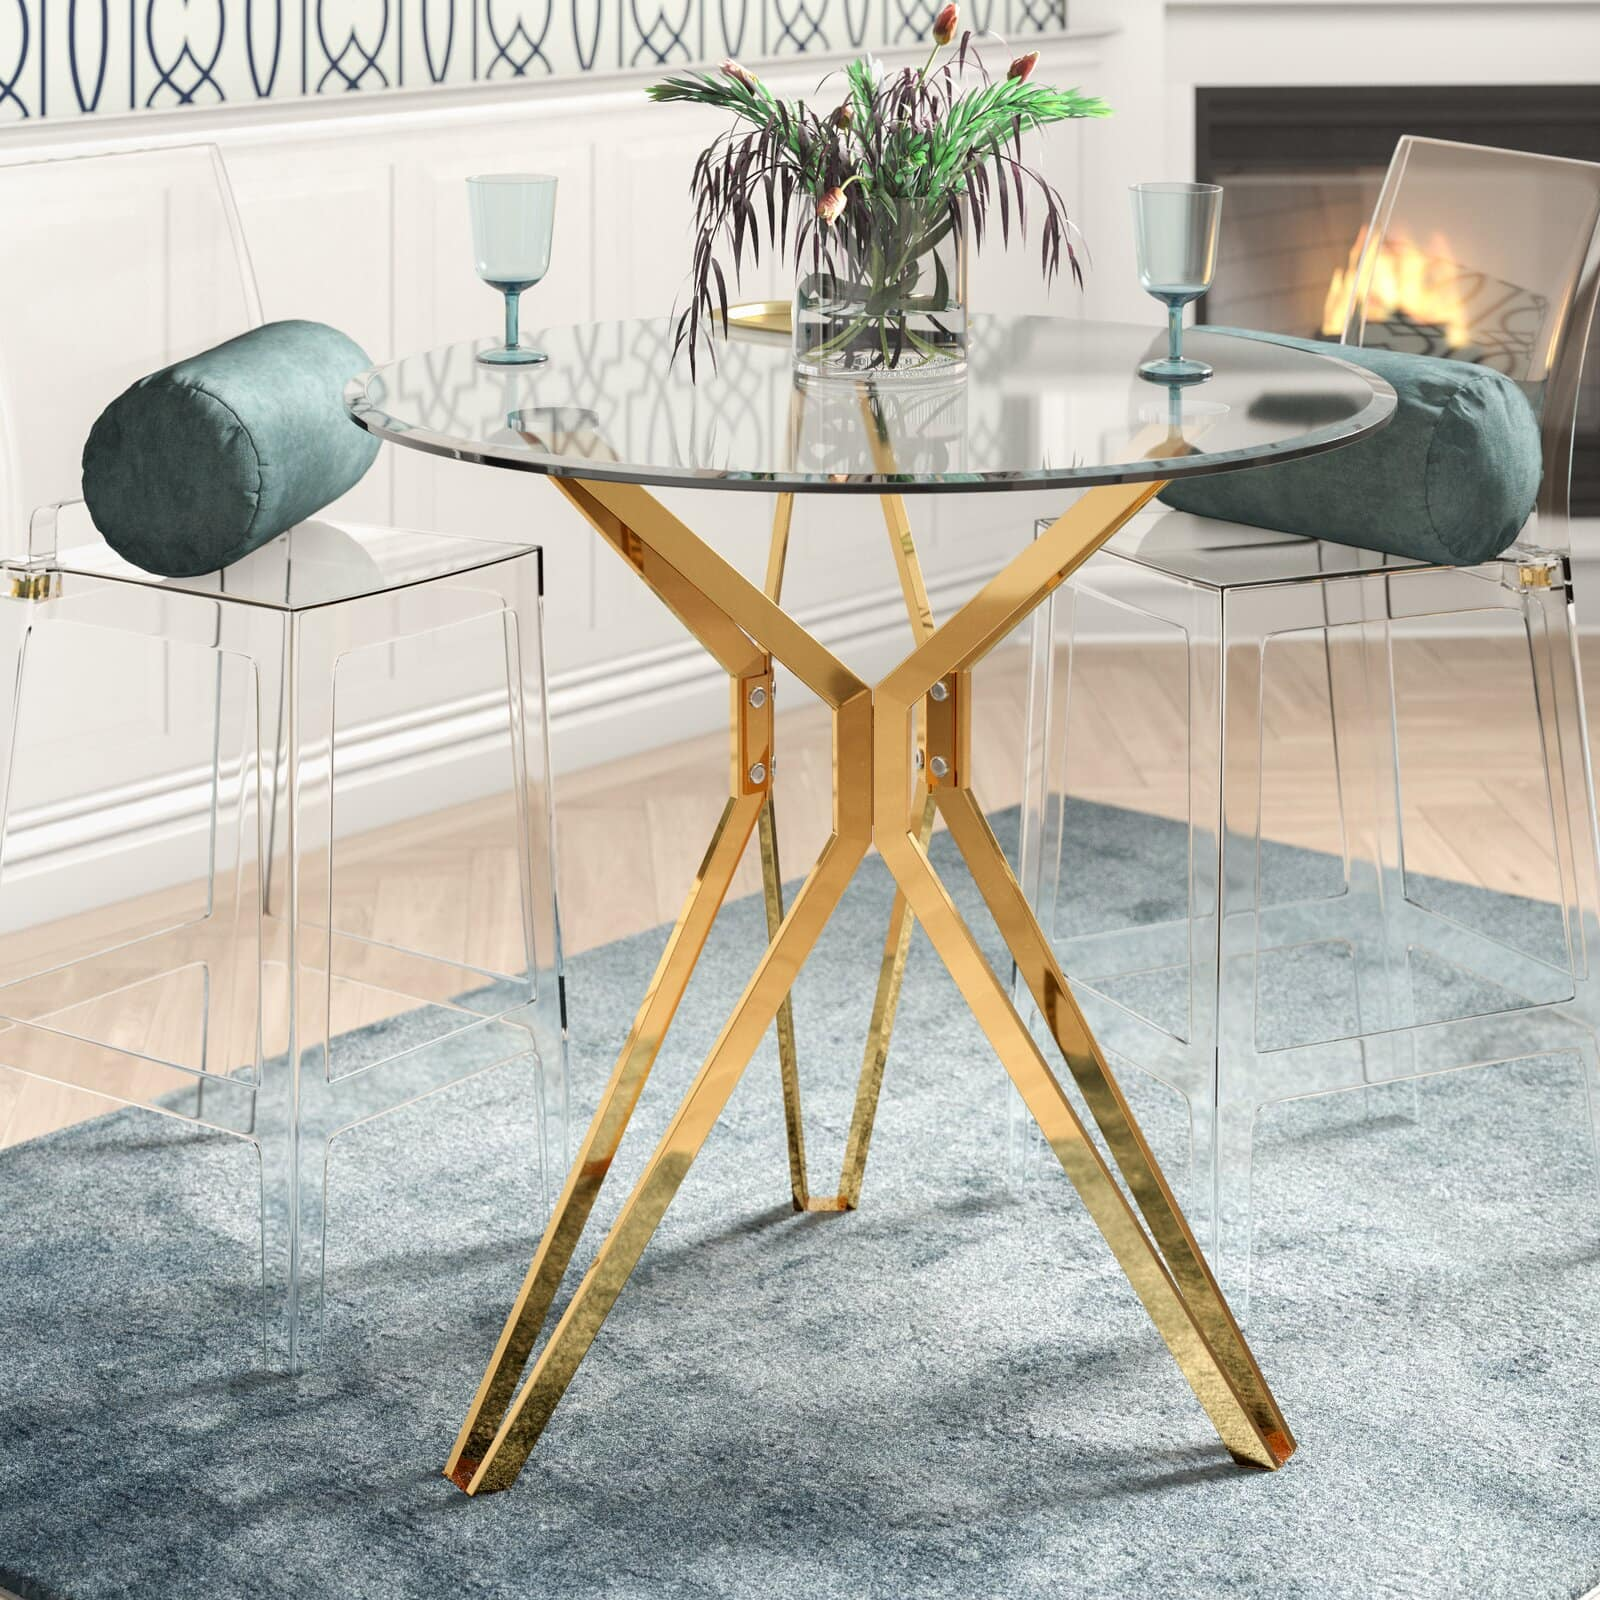 Keep it Chic With a Compact Glass and Gold Dining Table